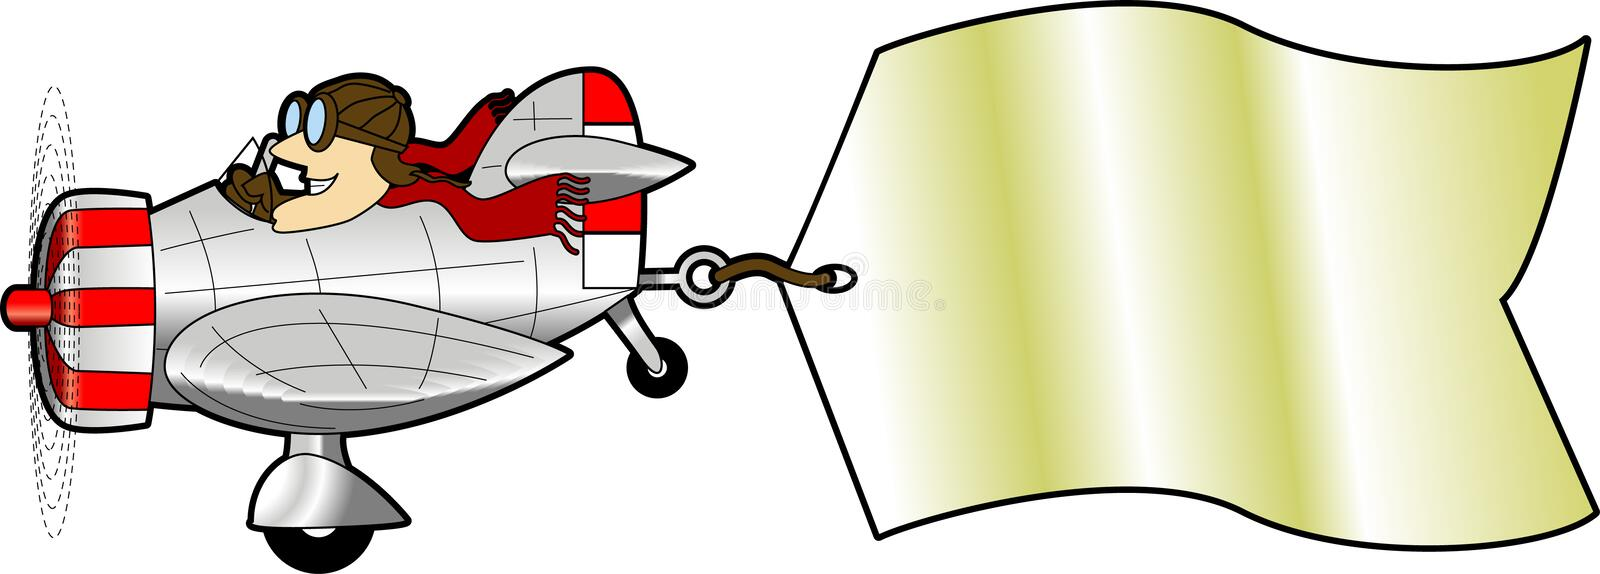 Airplane. Cartoon graphic depicting flying airplane pulling an attached message sign royalty free illustration